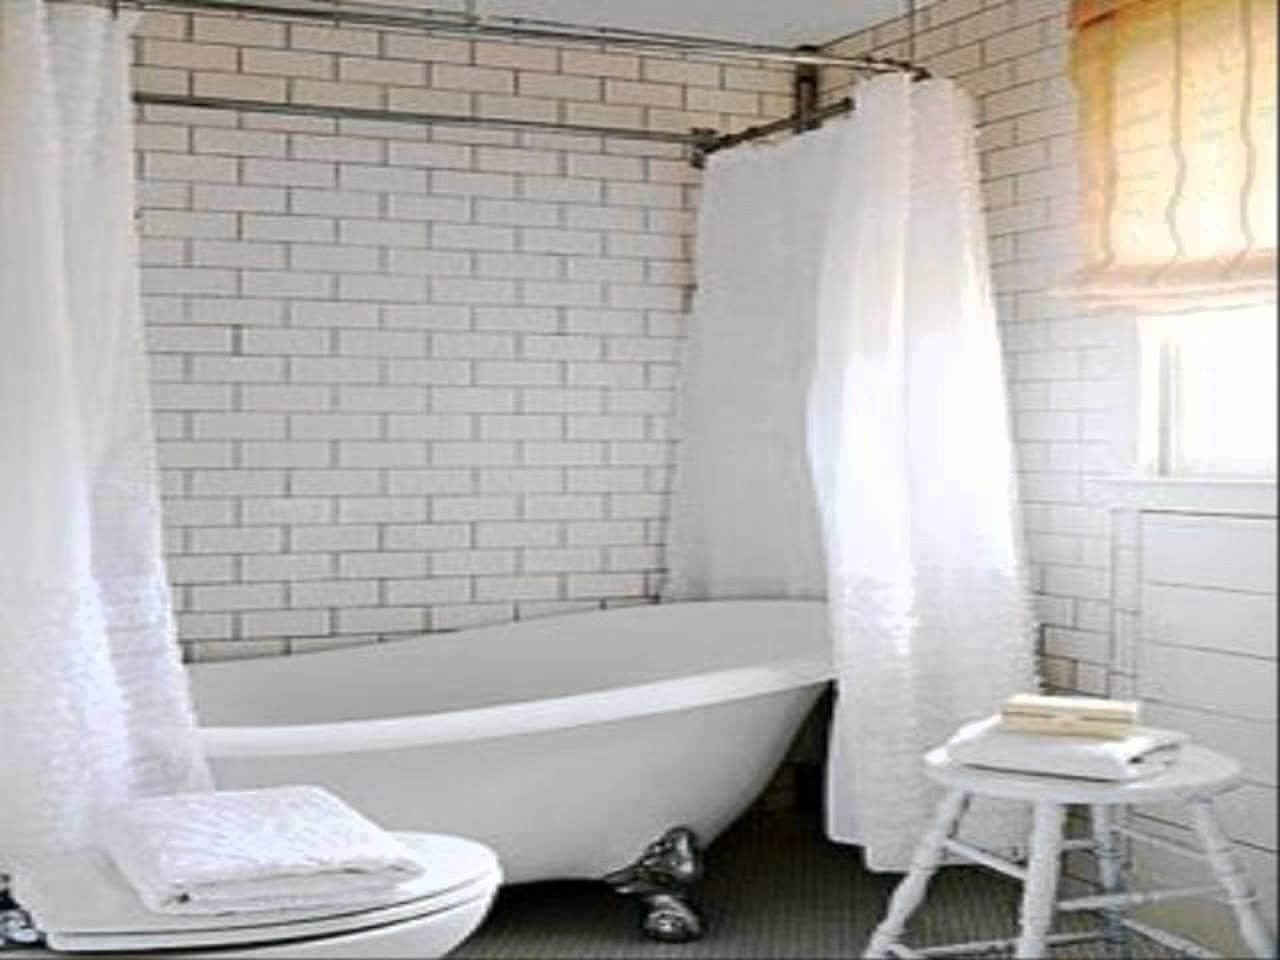 Clawfoot Tub Shower Curtain Buying With Images Budget